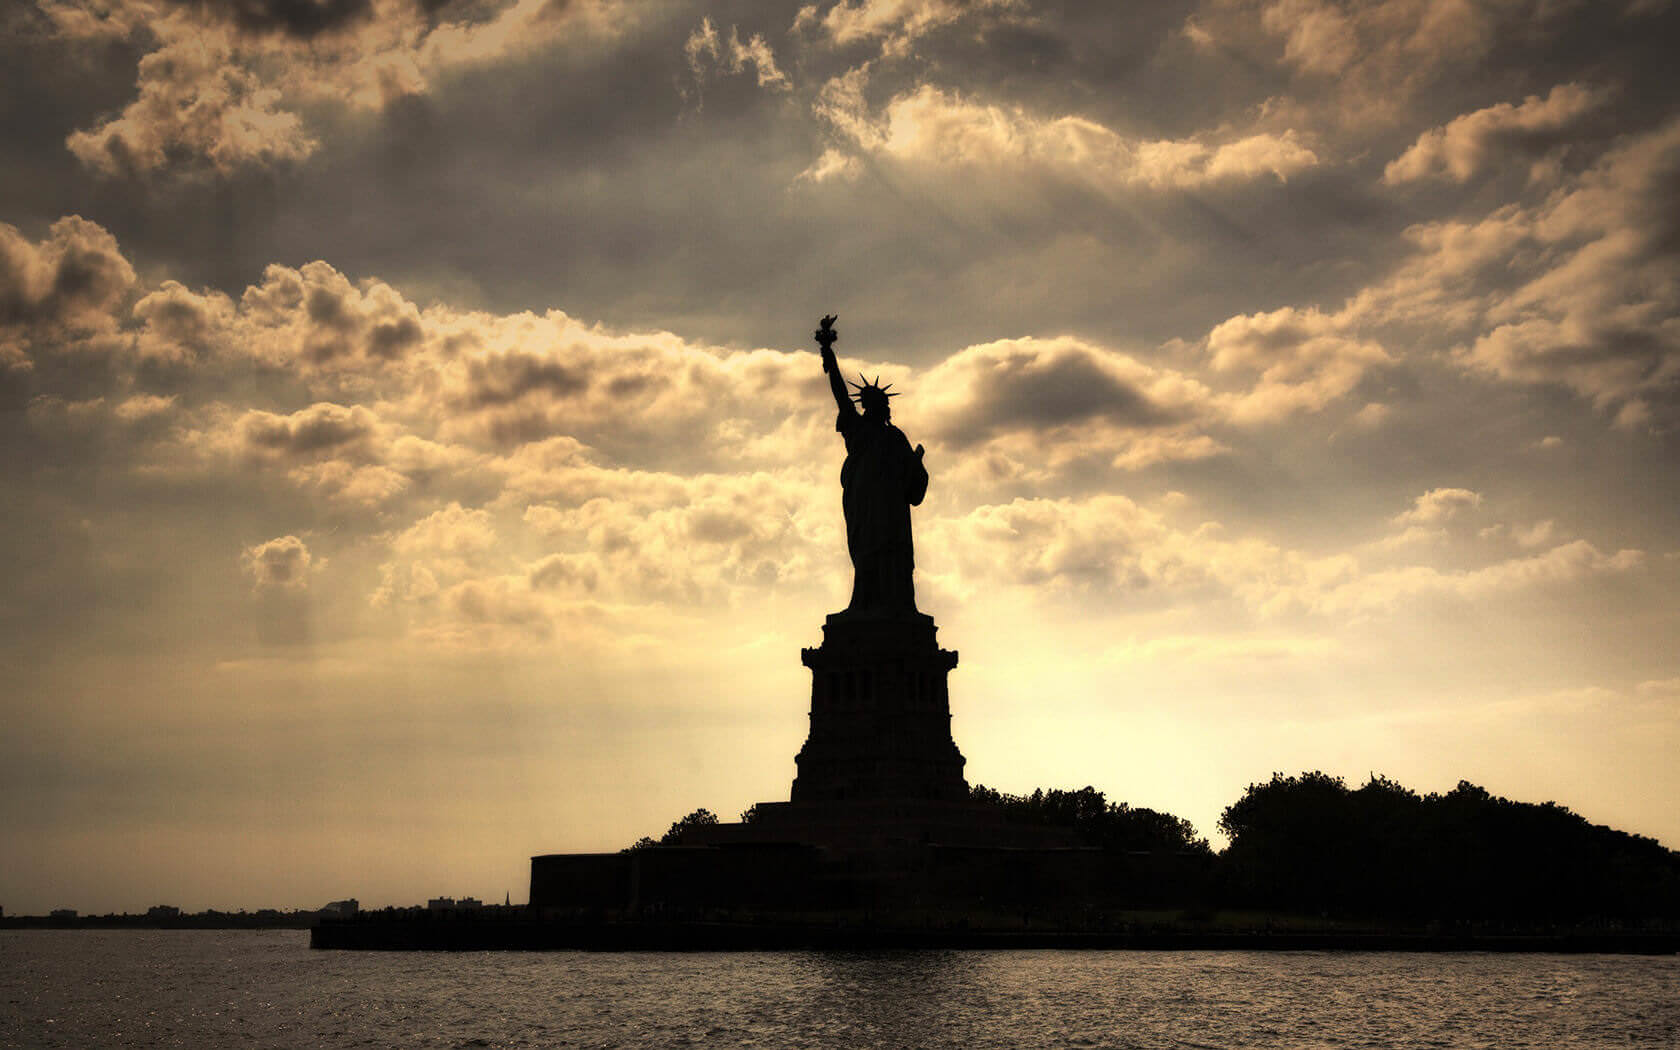 Our Beautiful Statue of Liberty